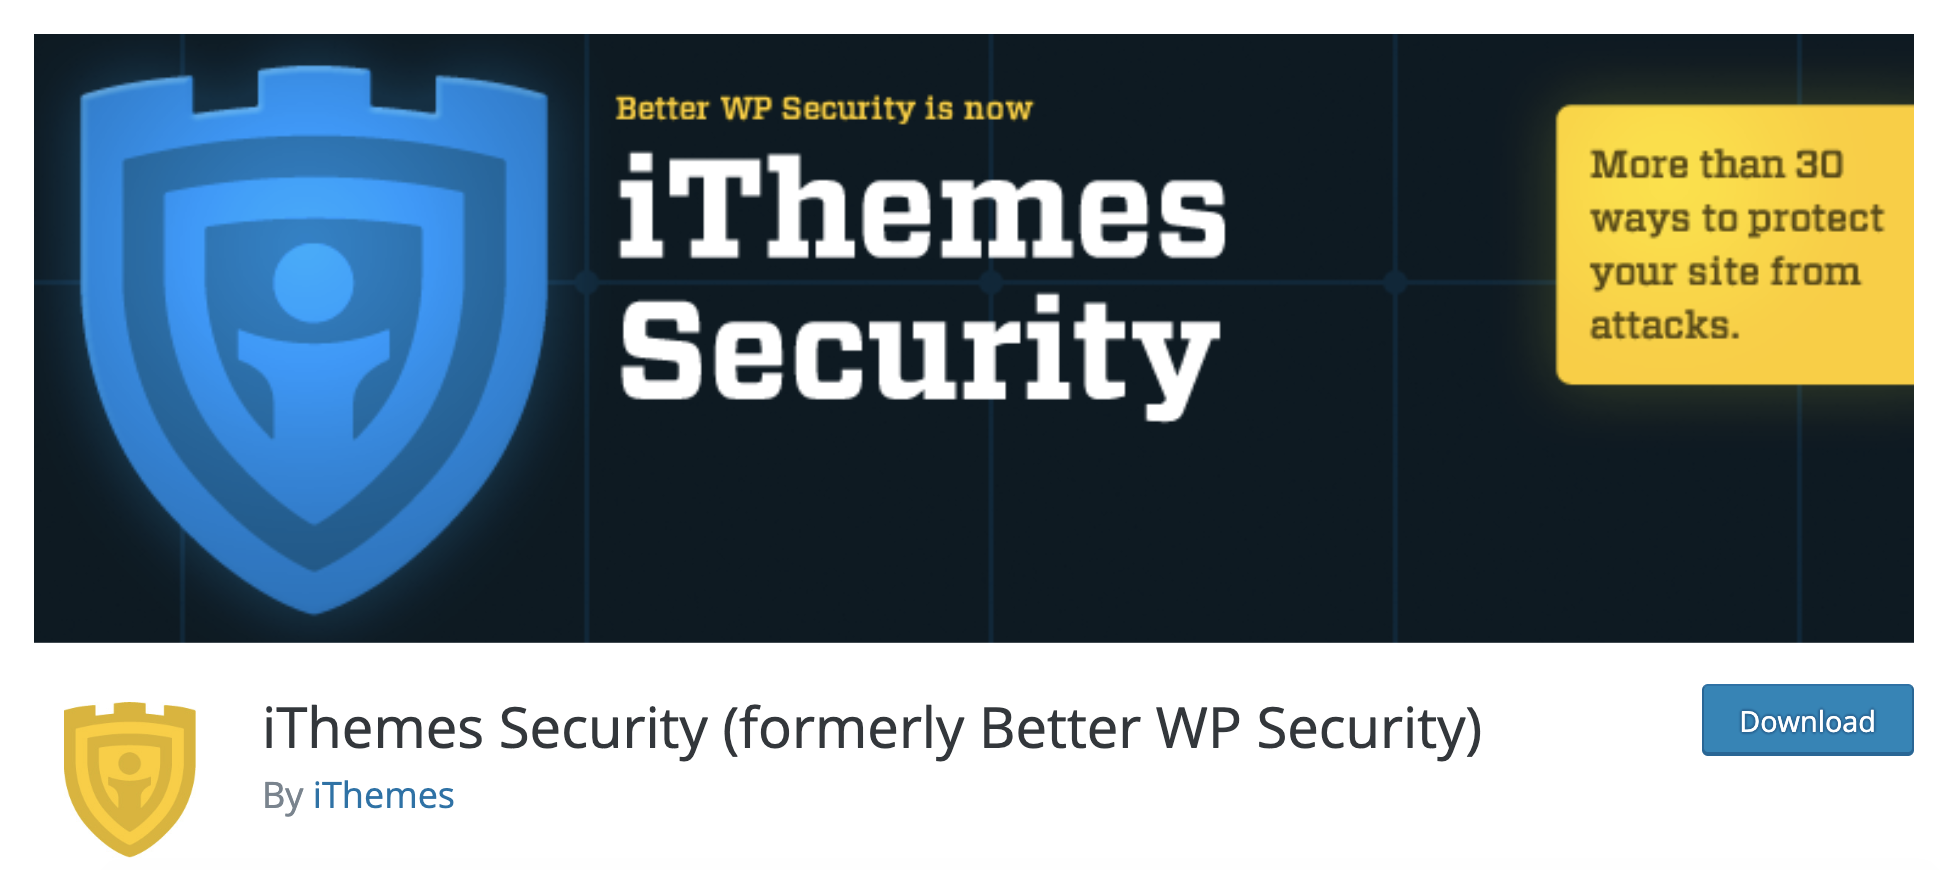 ithemes security wordpress theme